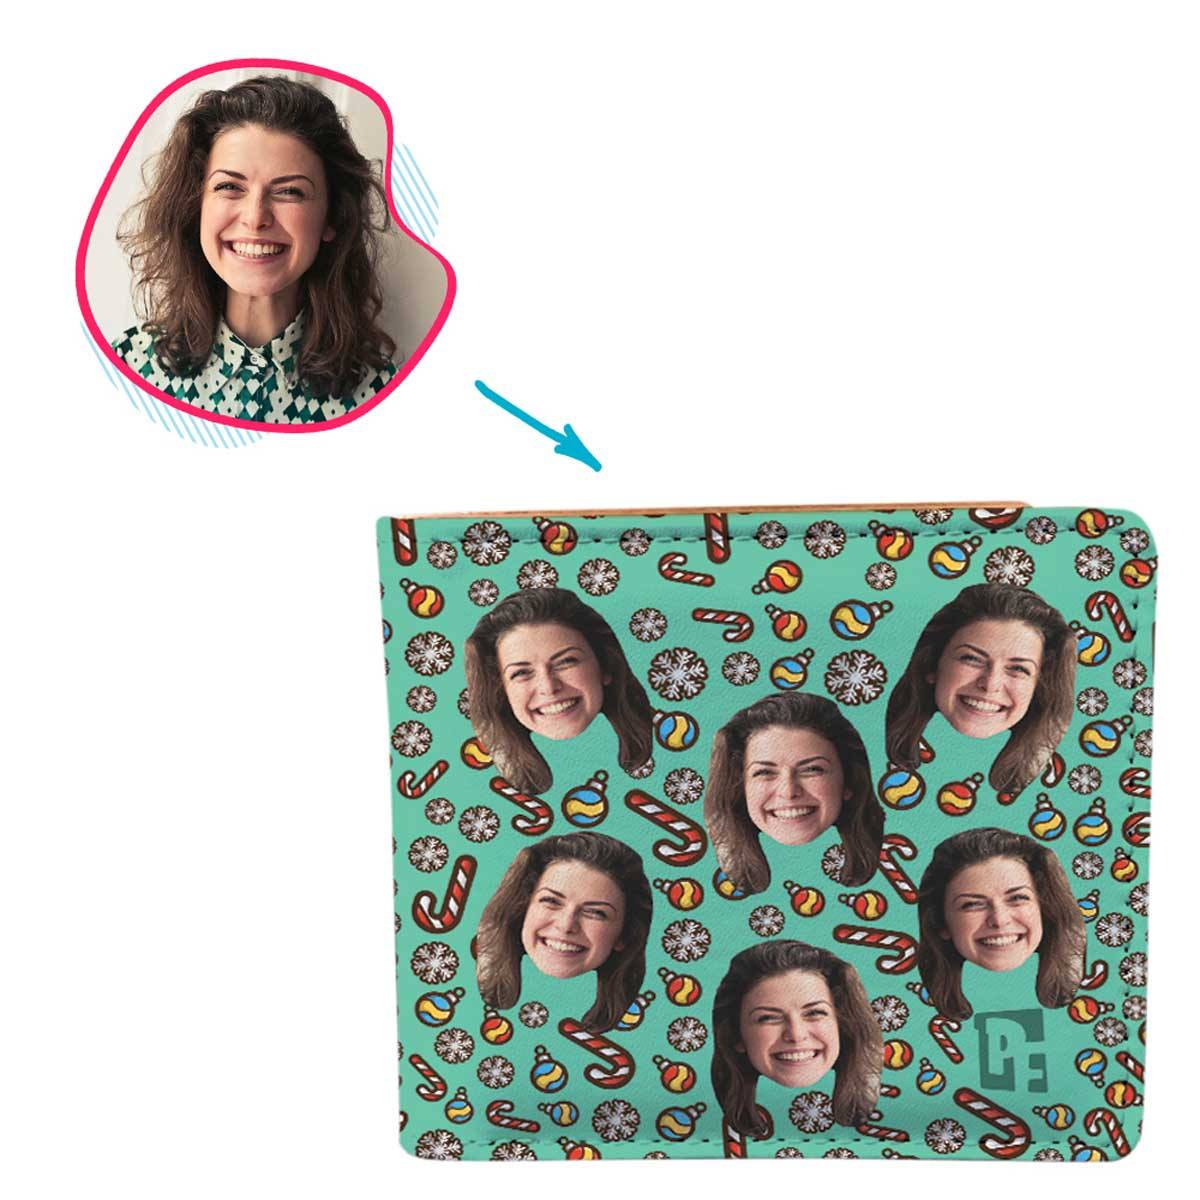 mint Christmas Tree Toy wallet personalized with photo of face printed on it